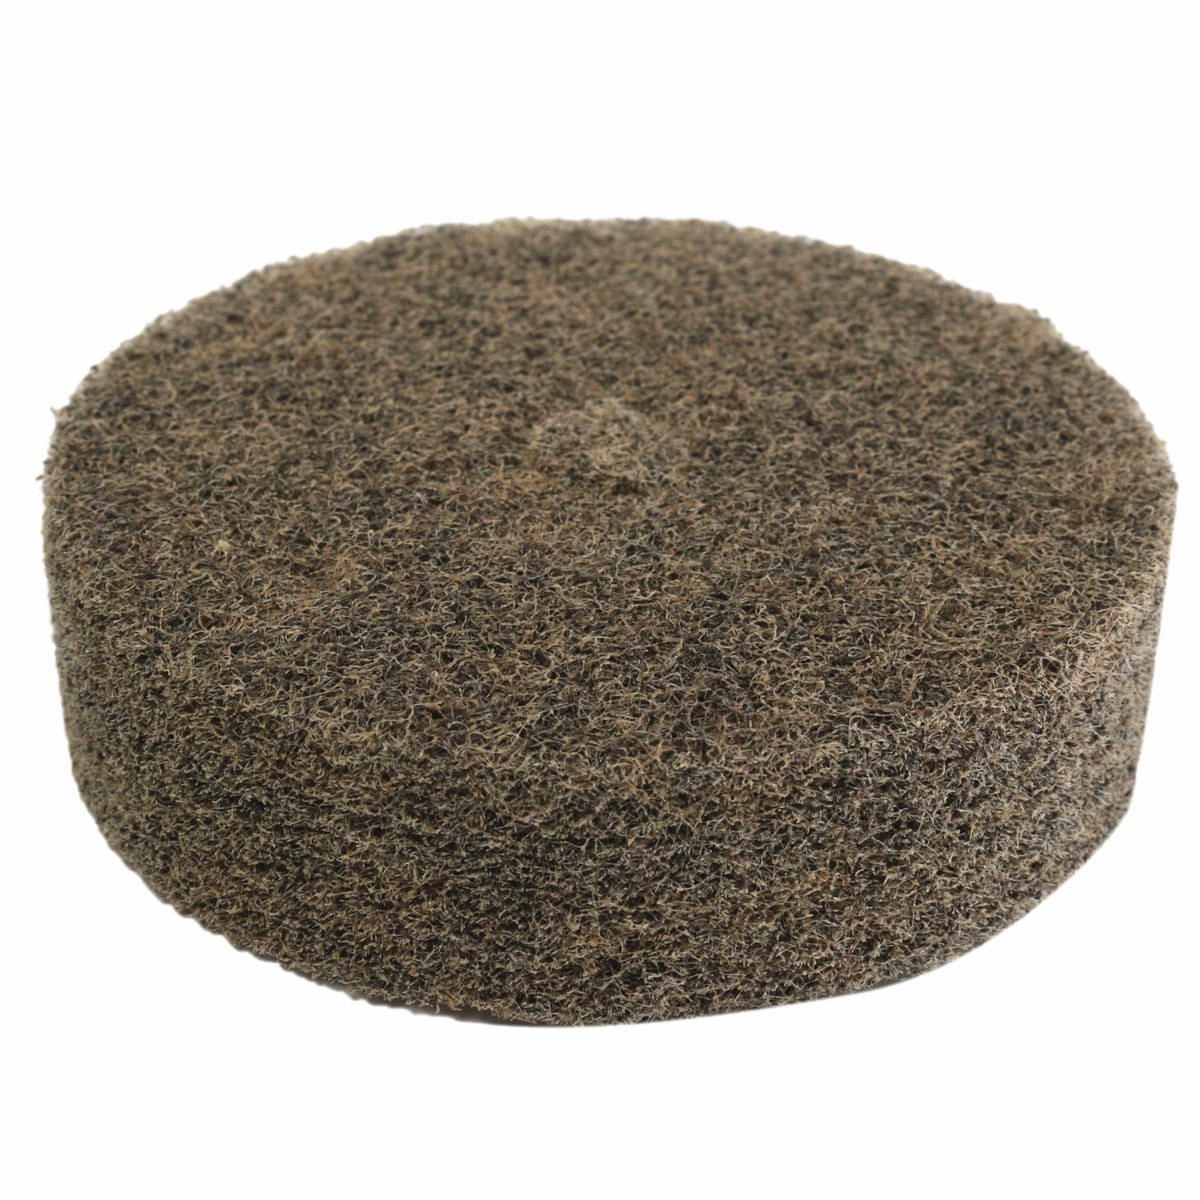 3 39 39 75mm nylon fiber polishing polisher buffing pad grinding wheel abrasive tool ebay. Black Bedroom Furniture Sets. Home Design Ideas